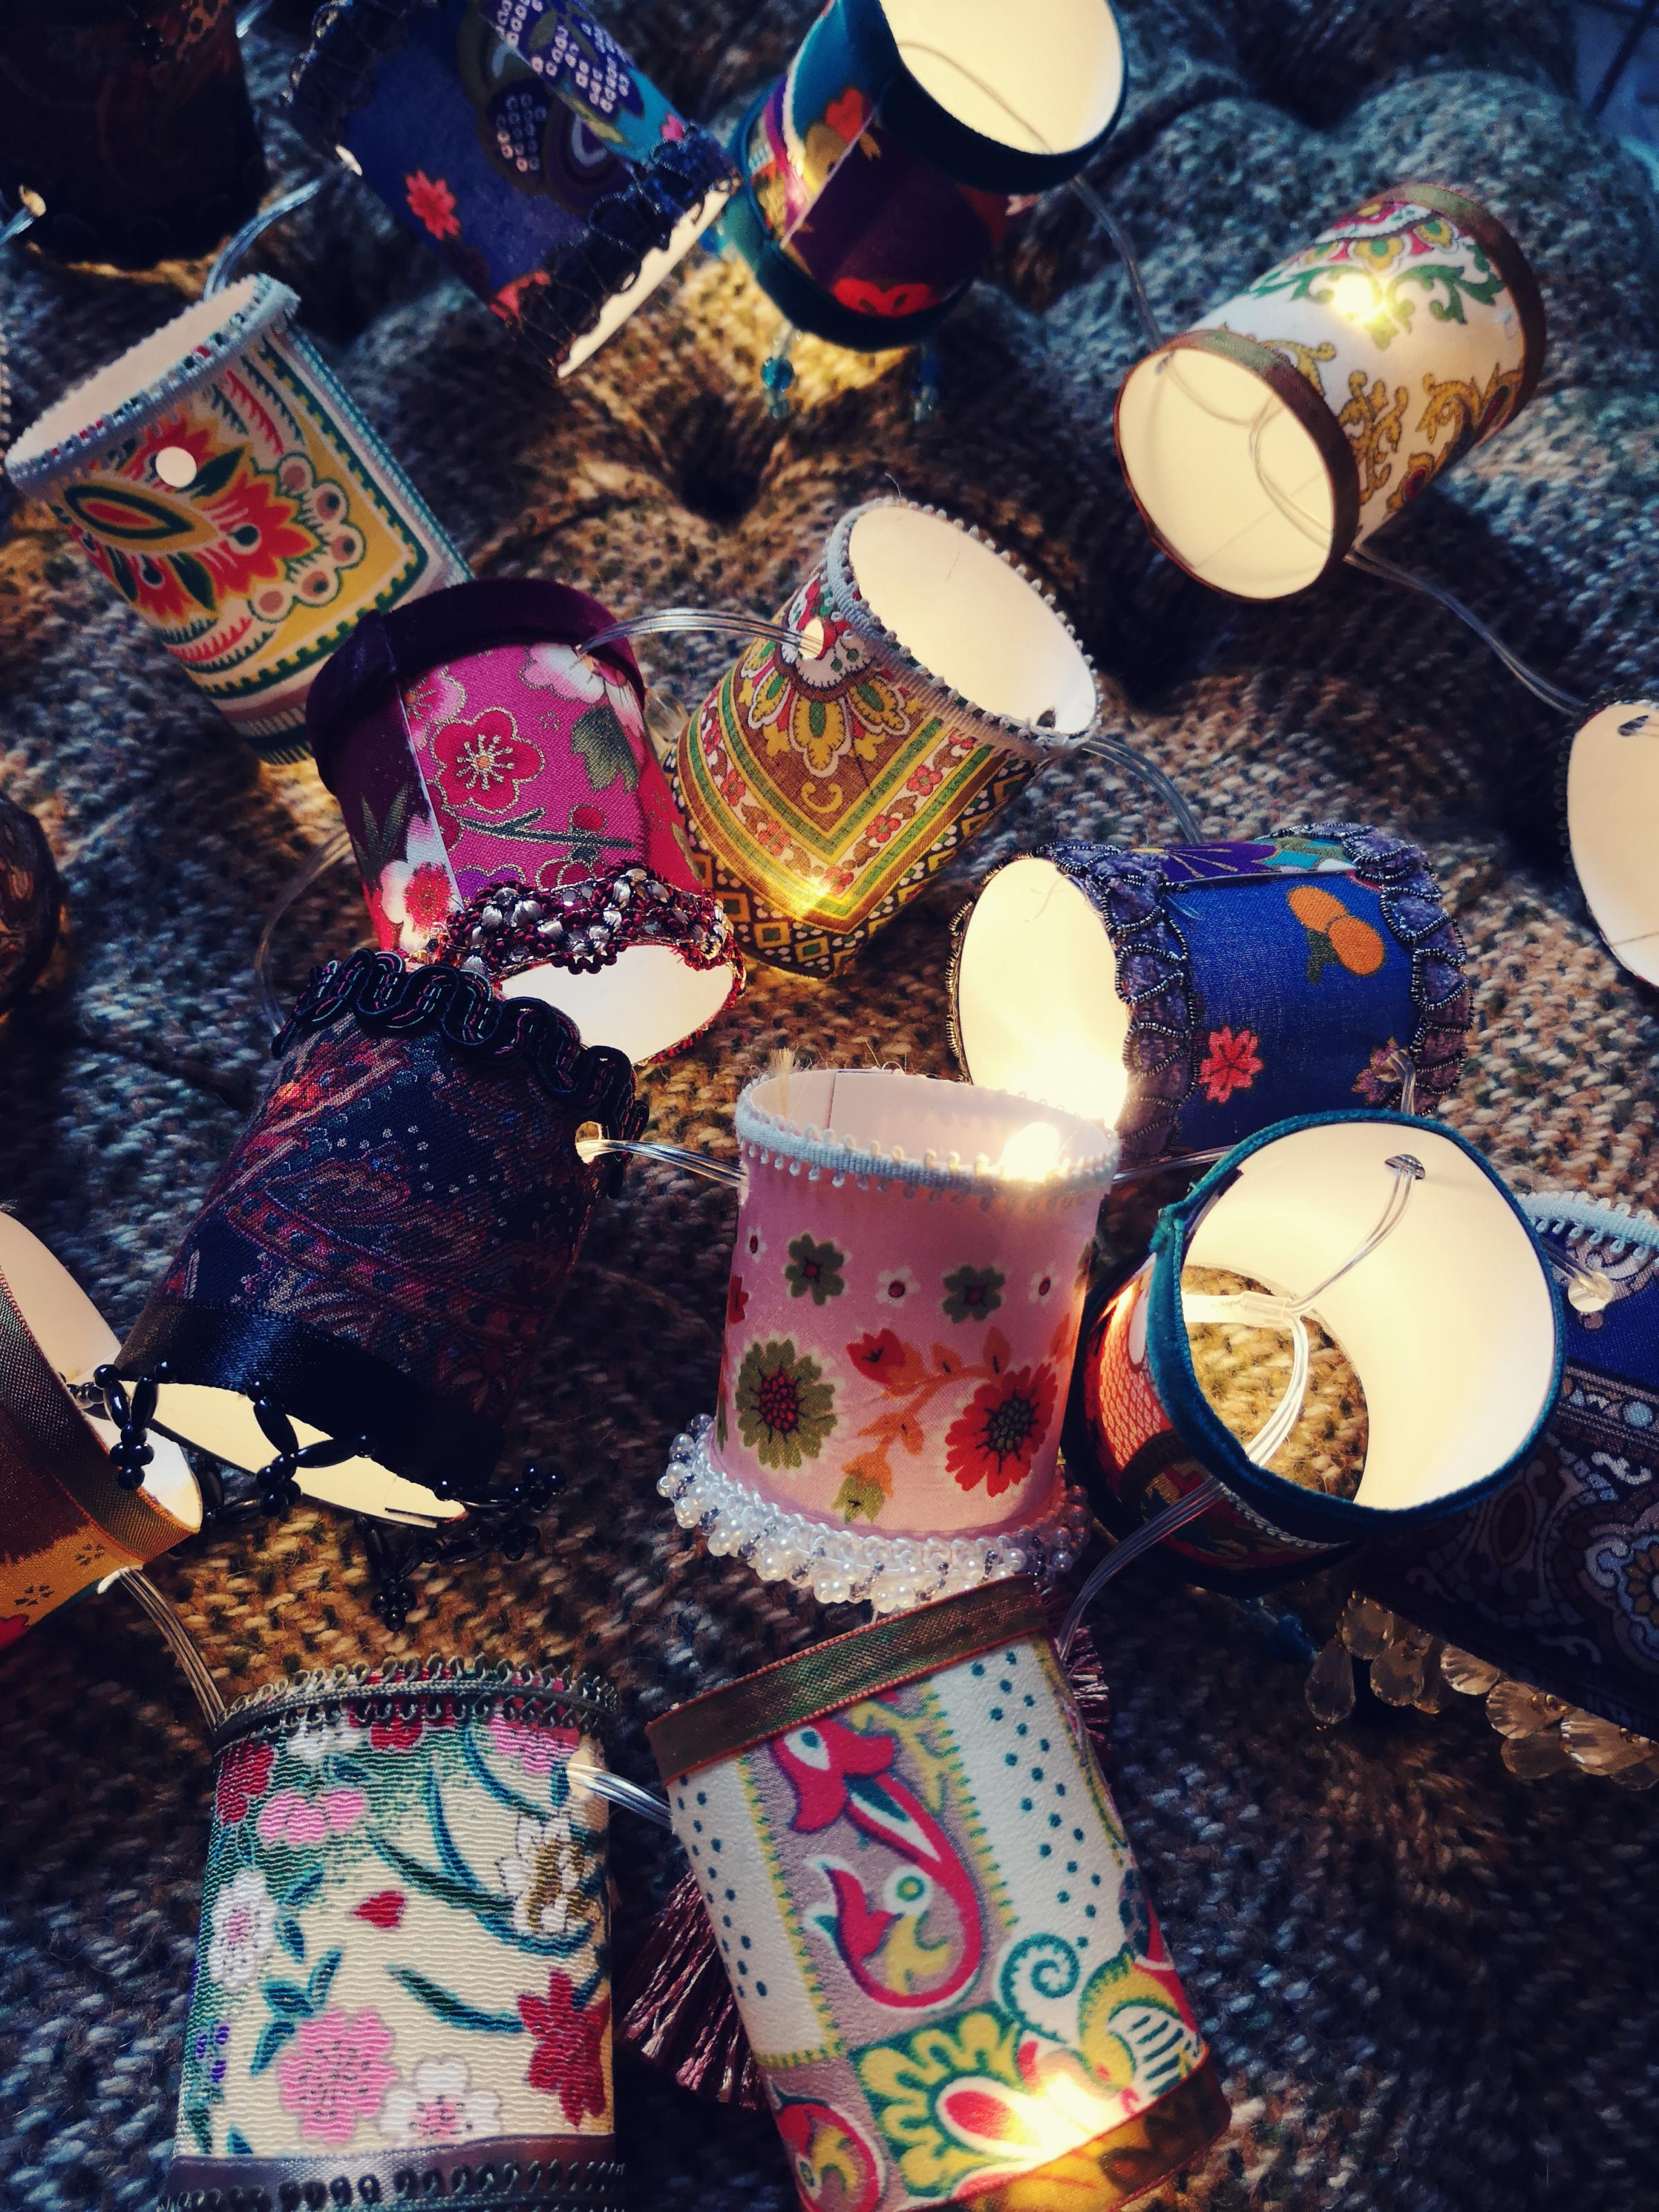 The Malthouse Collective Sew Vintage Christmas Fairy Light workshop